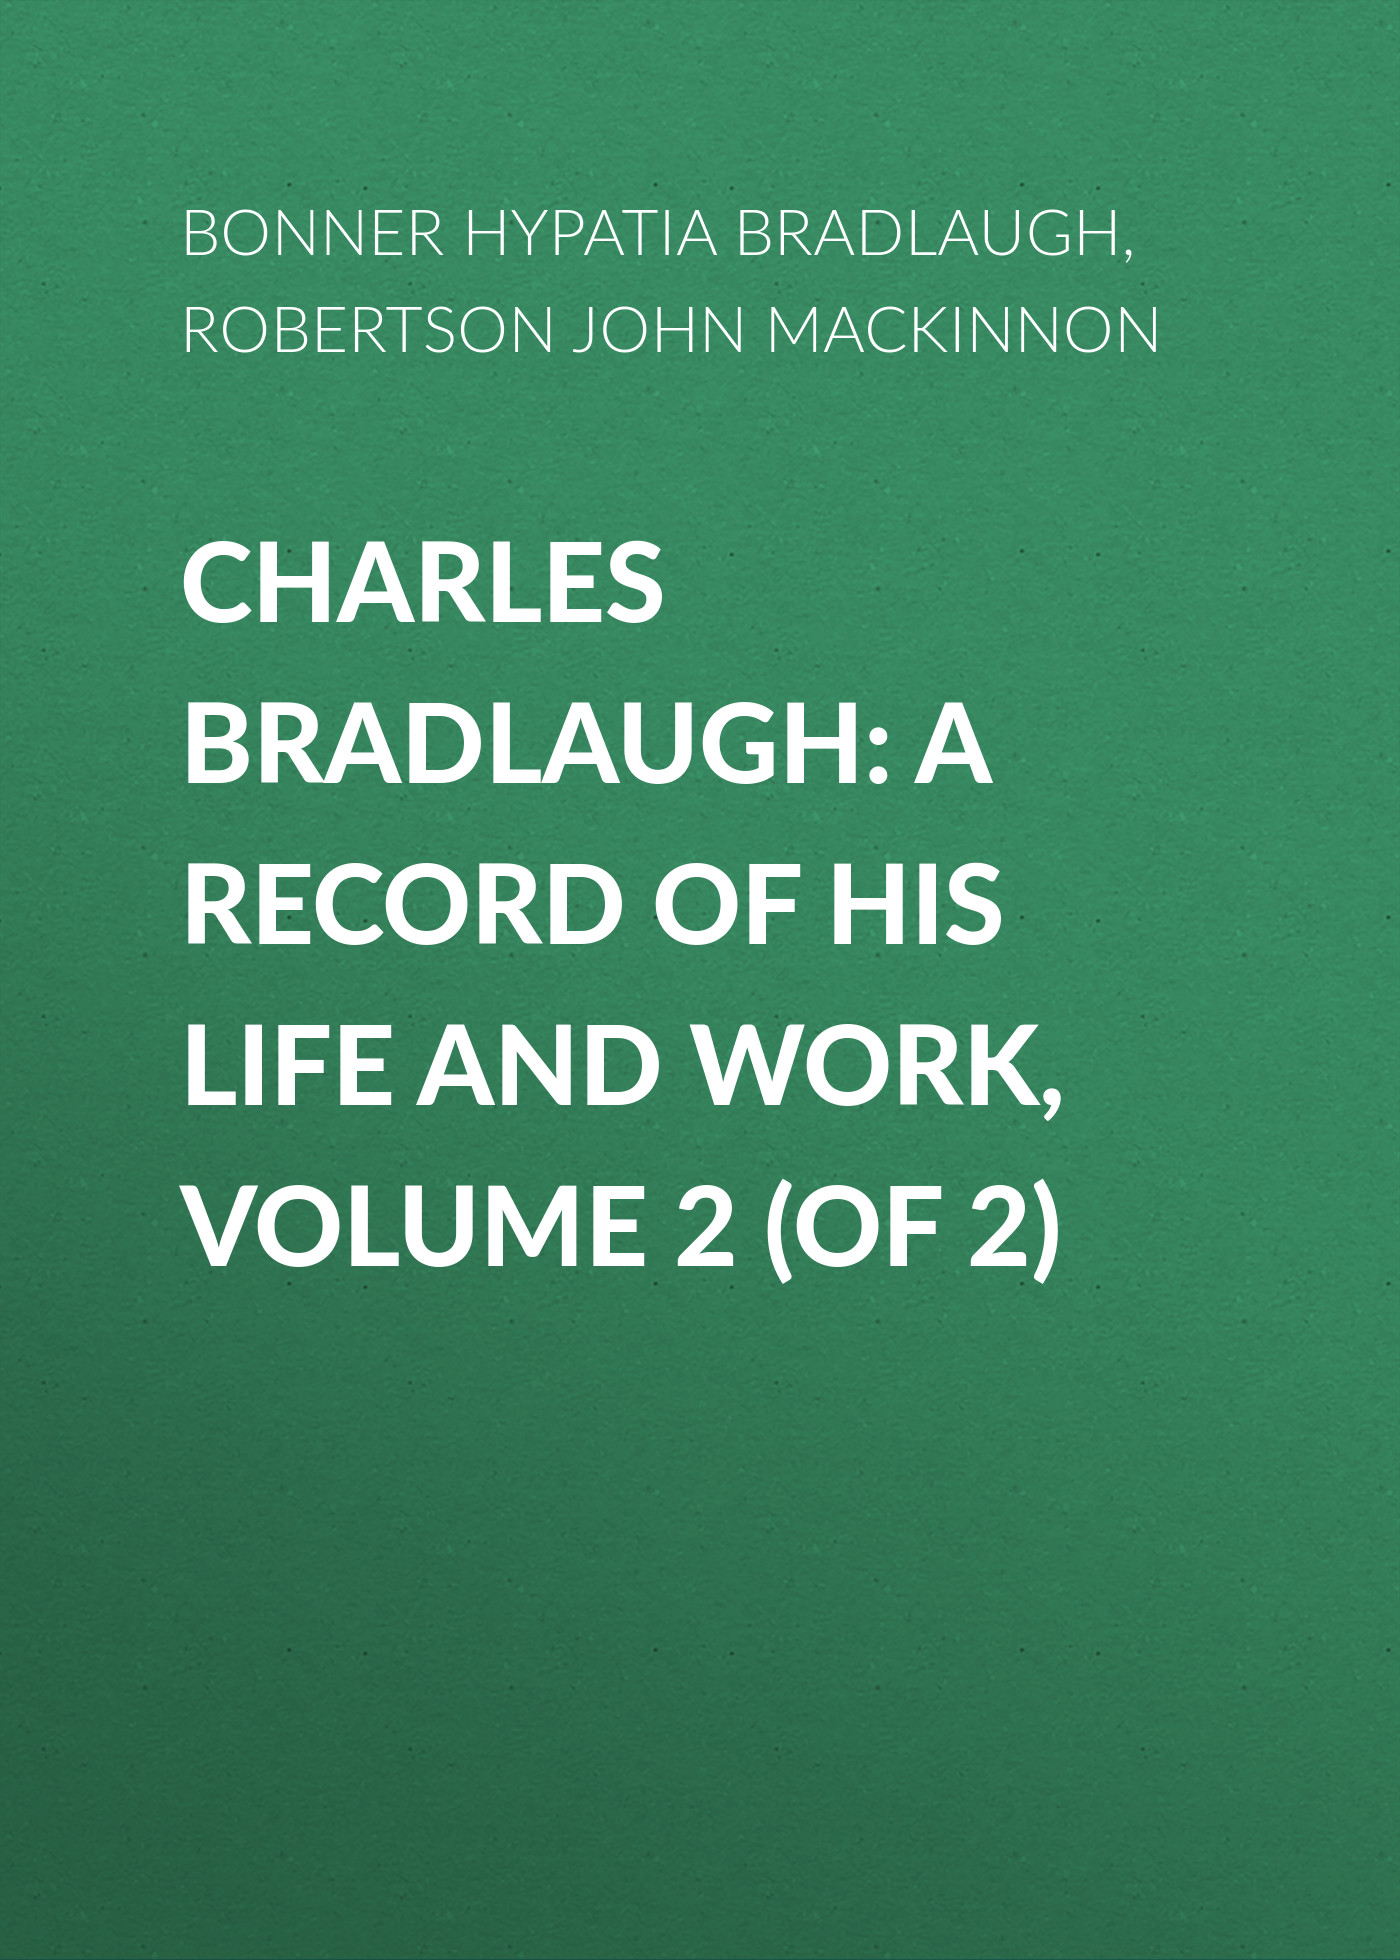 Bonner Hypatia Bradlaugh Charles Bradlaugh: a Record of His Life and Work, Volume 2 (of 2) cd iron maiden a matter of life and death